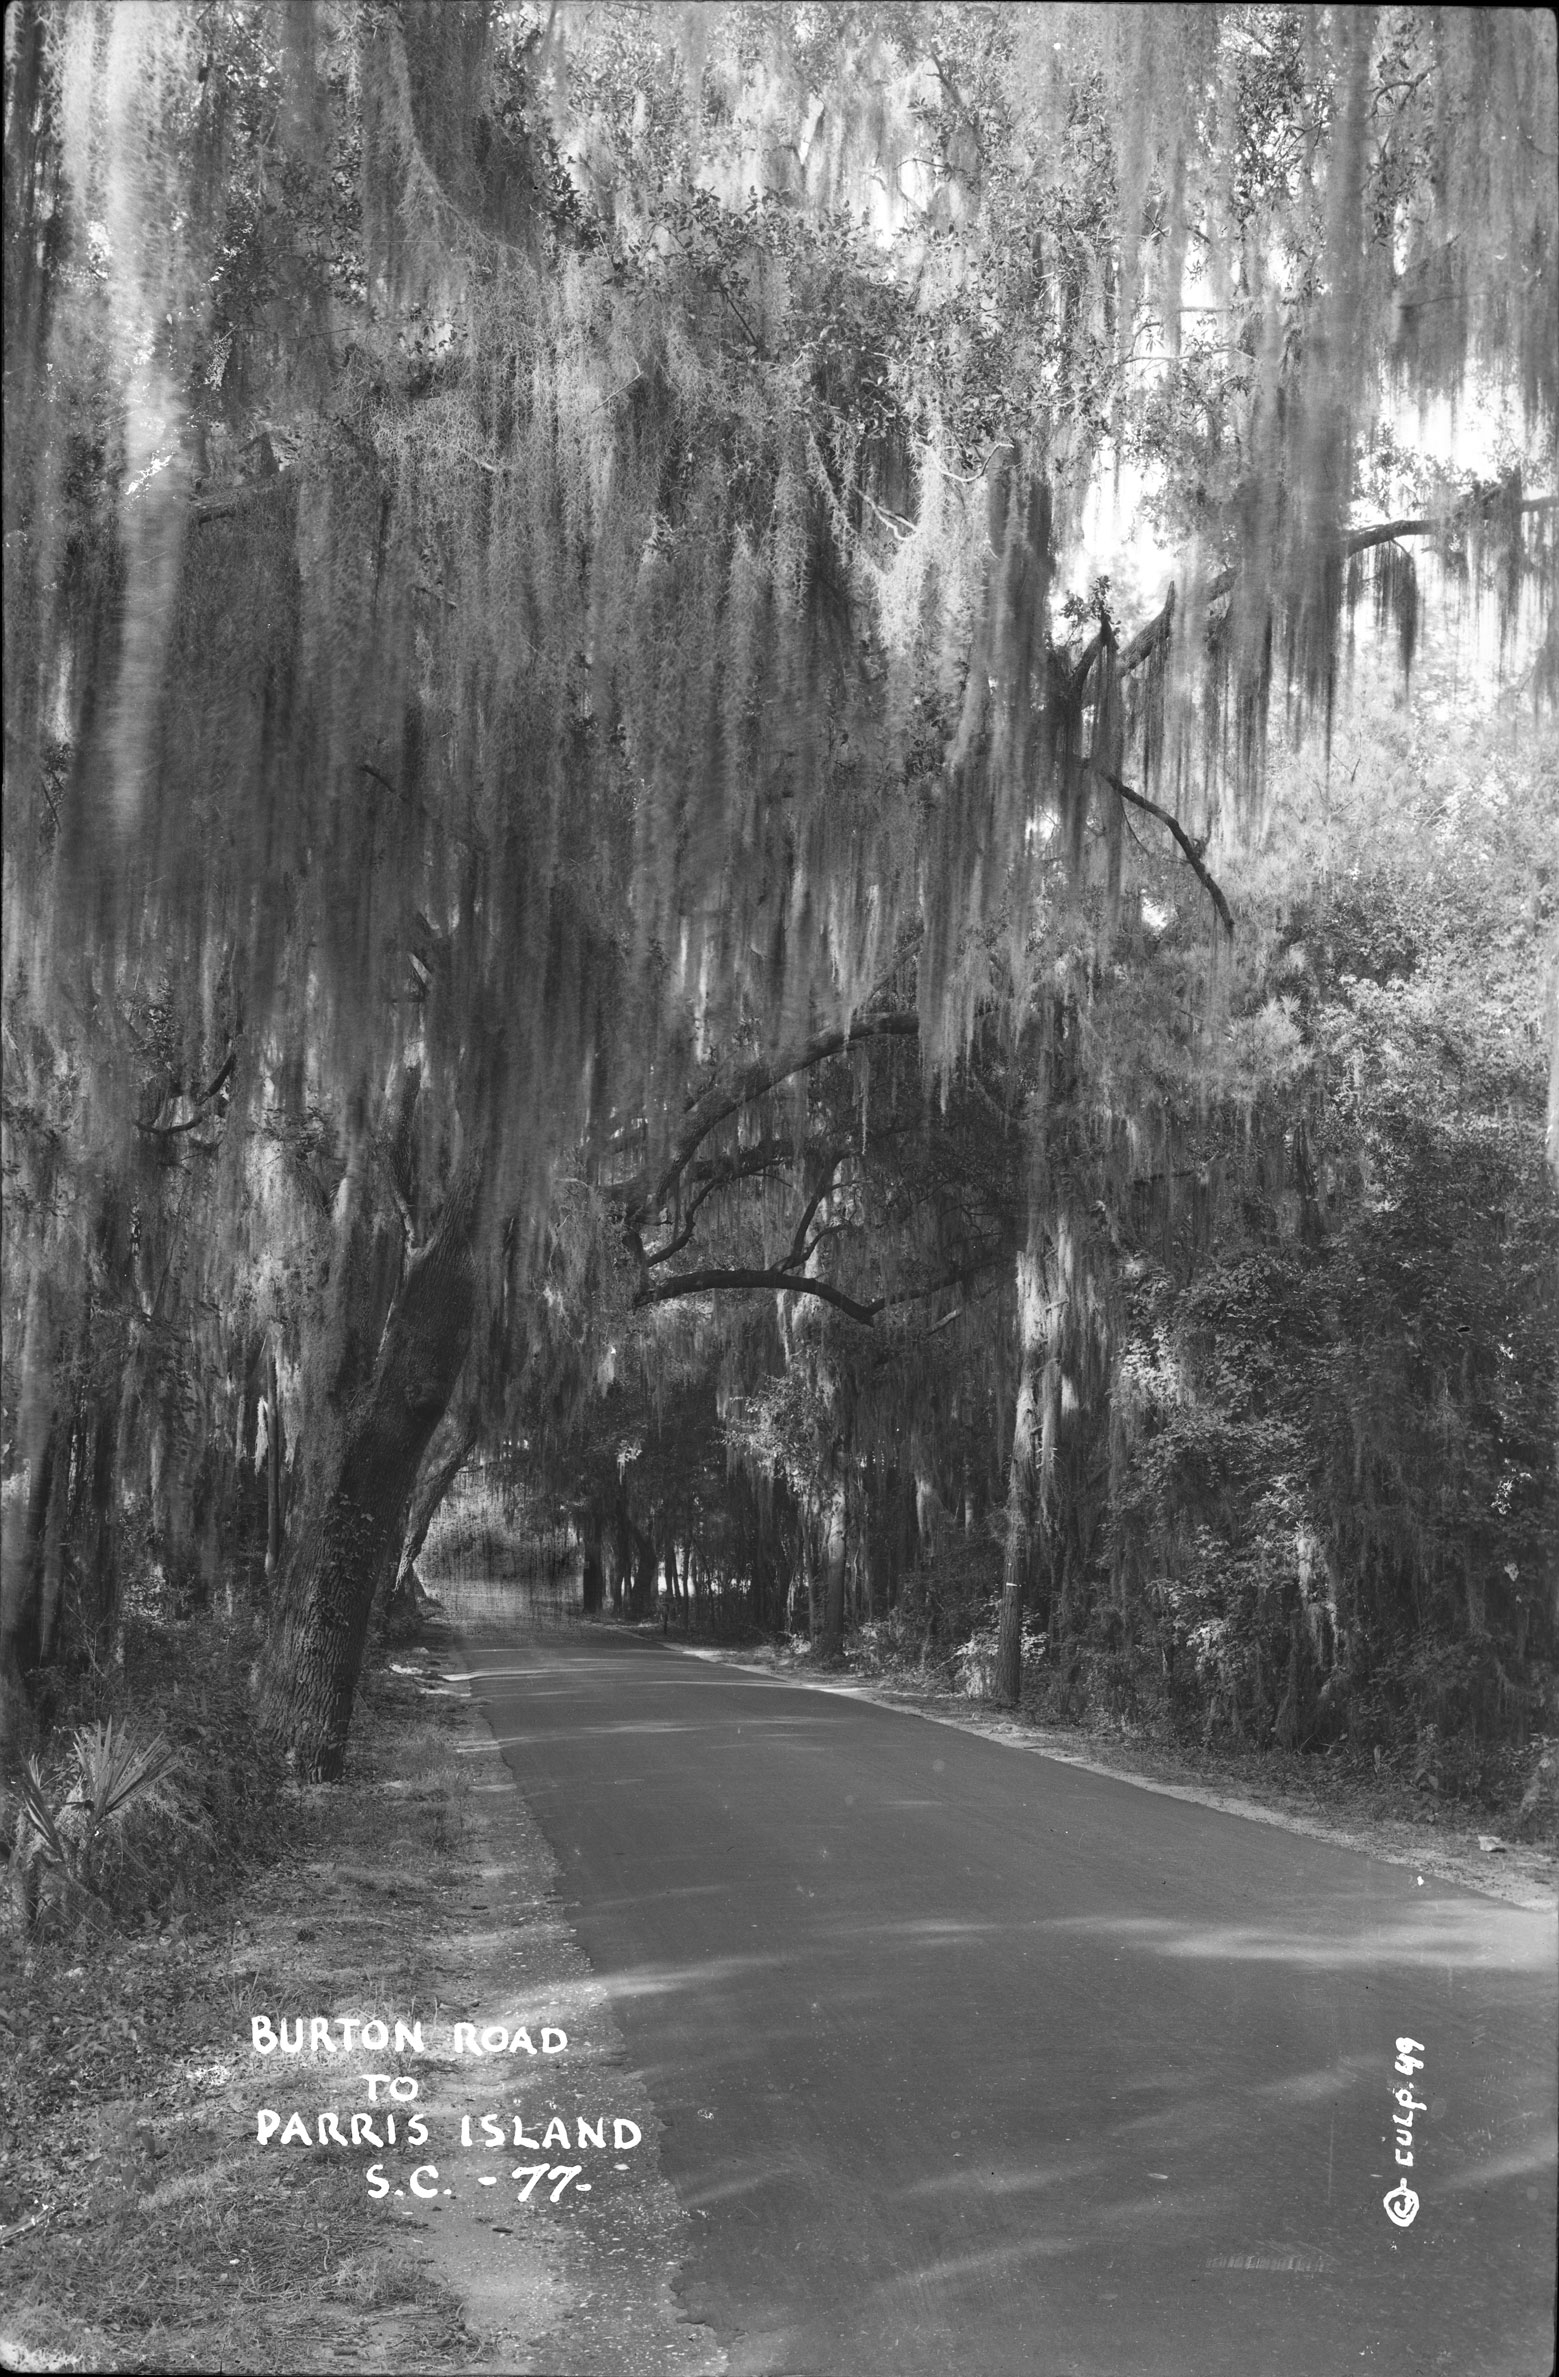 Burton Road to Parris Island SC upright view